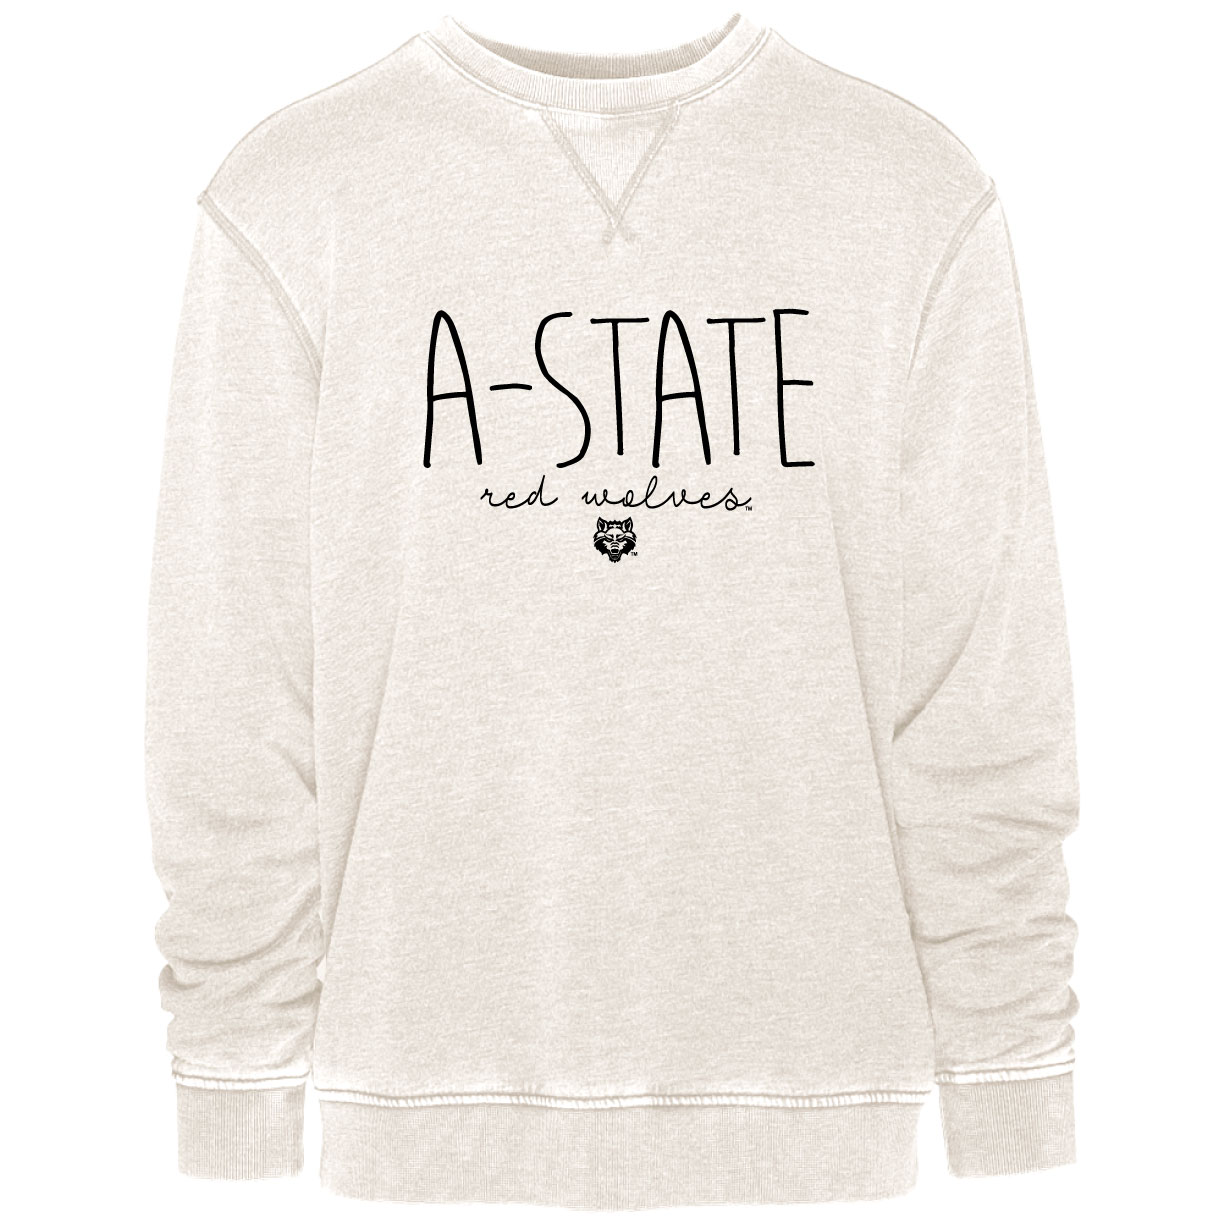 A-State Red Wolves Vintage Crew